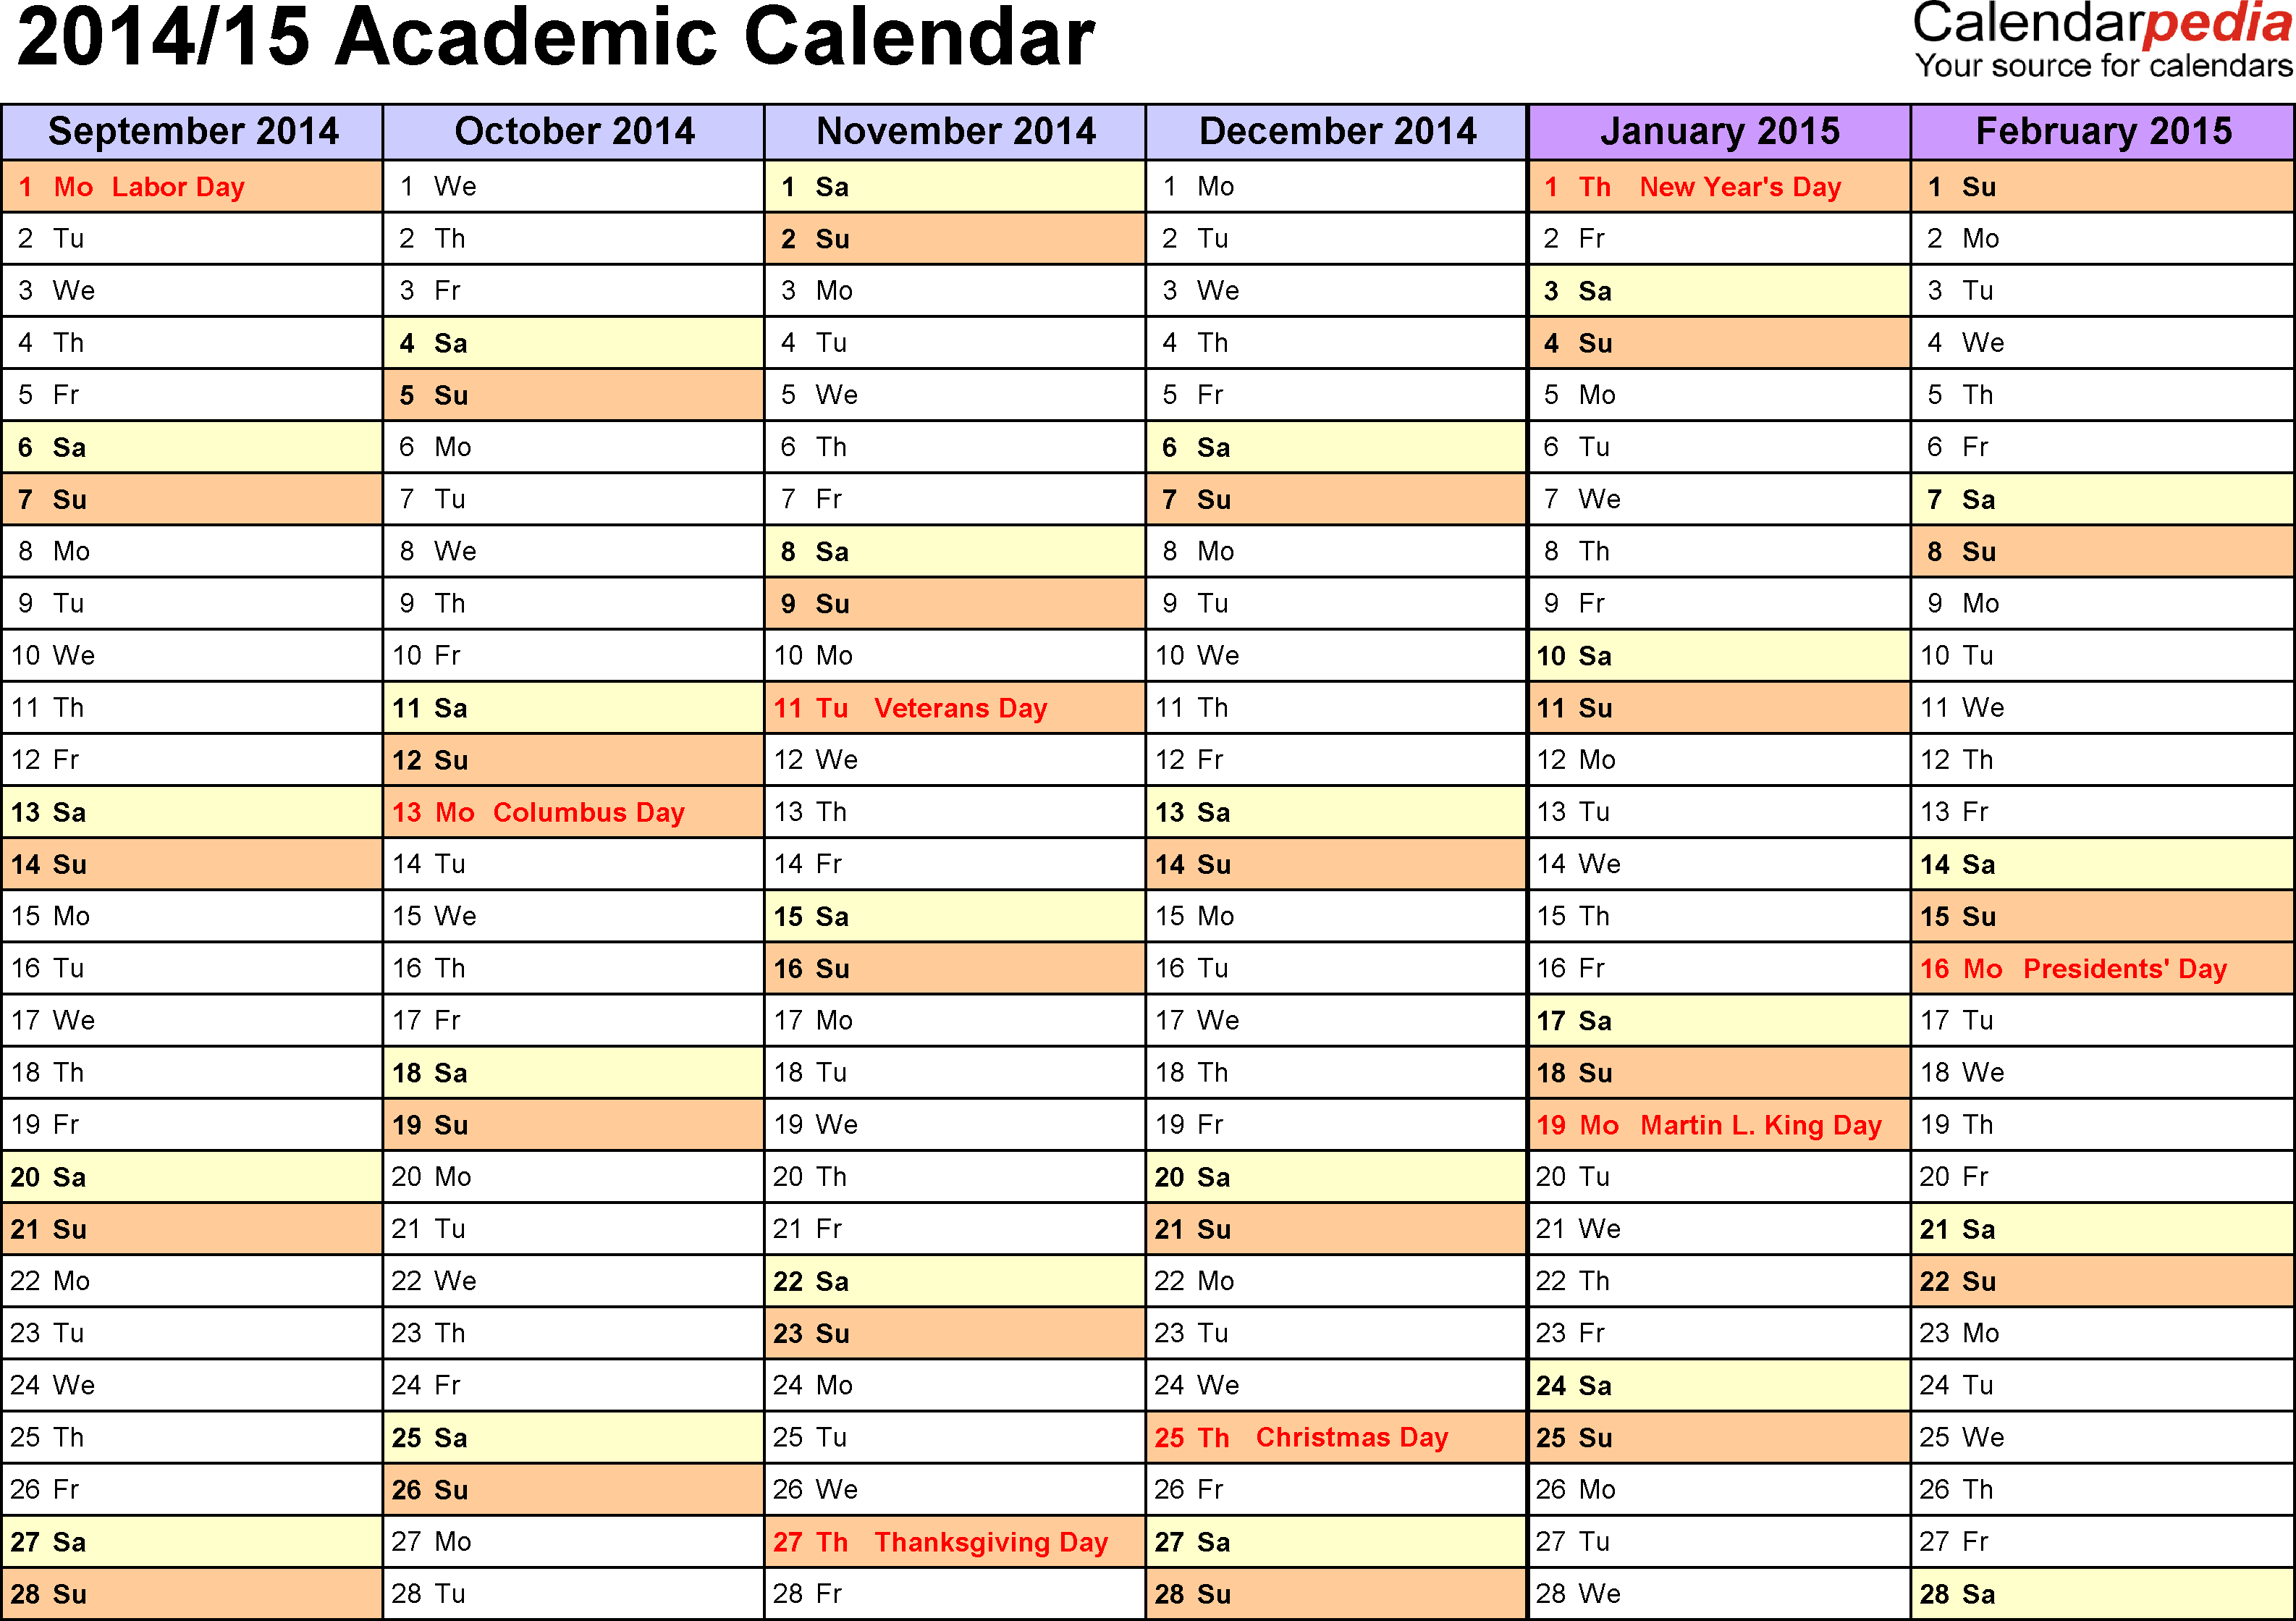 Academic calendars 2014 2015 as free printable pdf templates for Yearly planning calendar template 2014